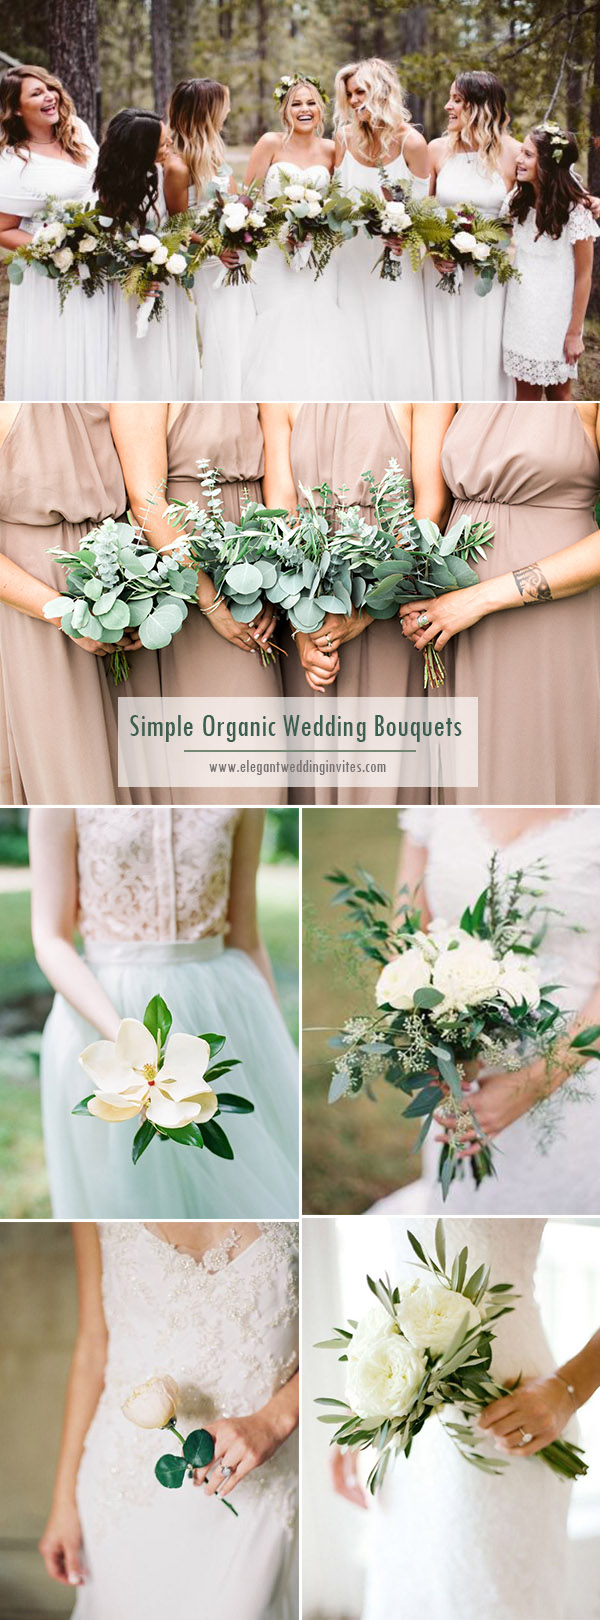 simple organic wedding bouquets